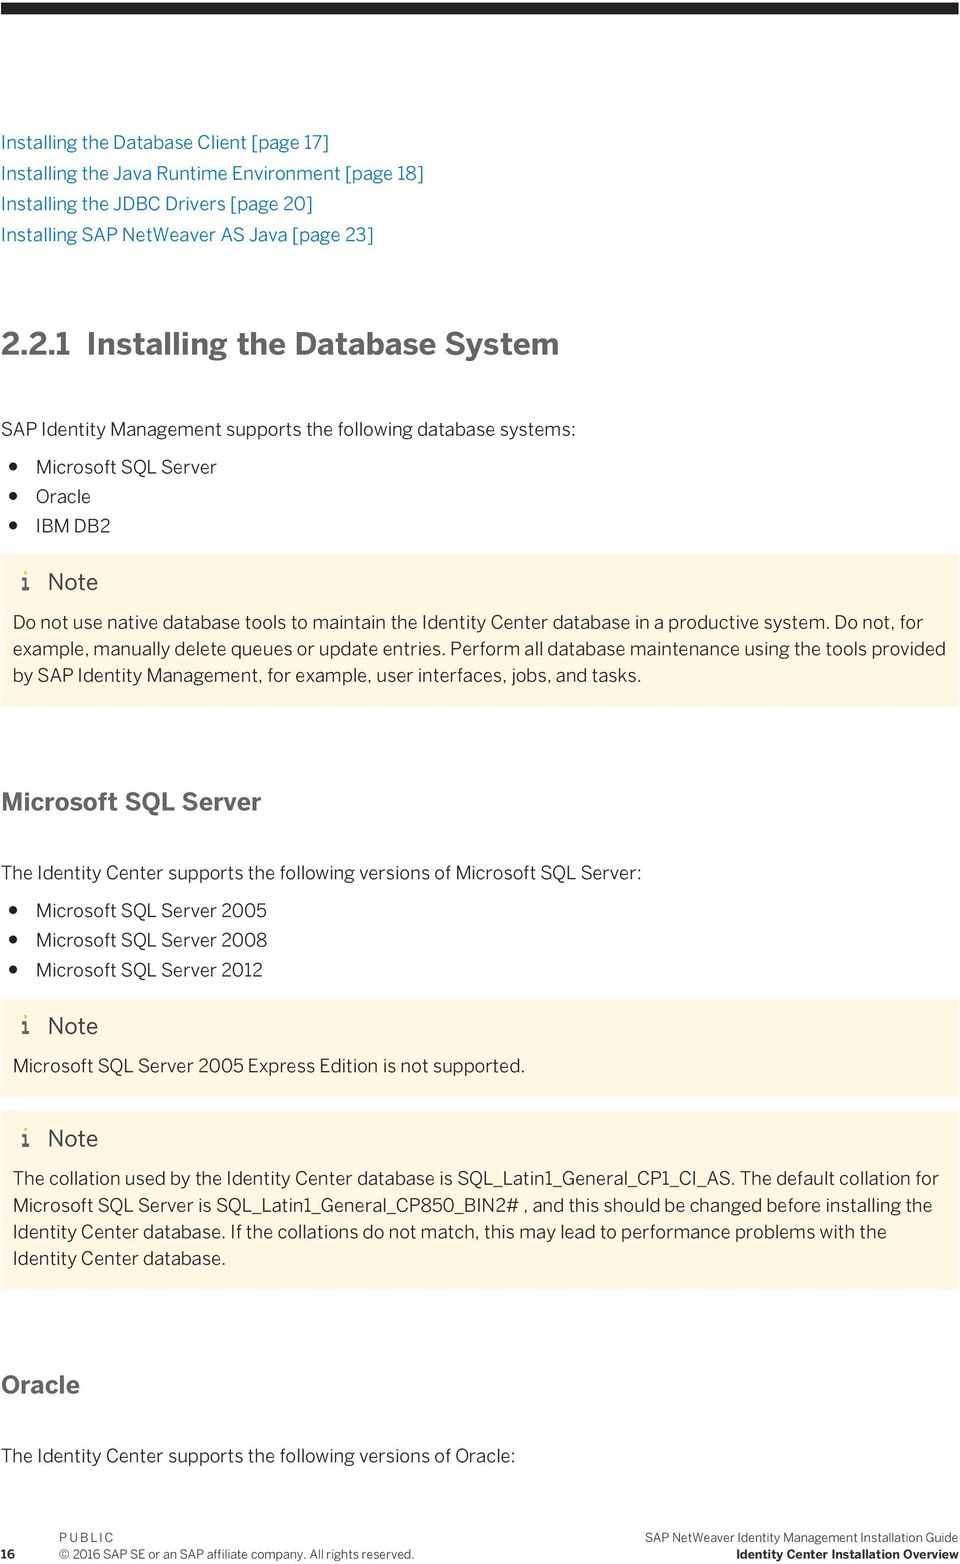 Troubleshooting odi connectivity to sql server express 2005 sonra.